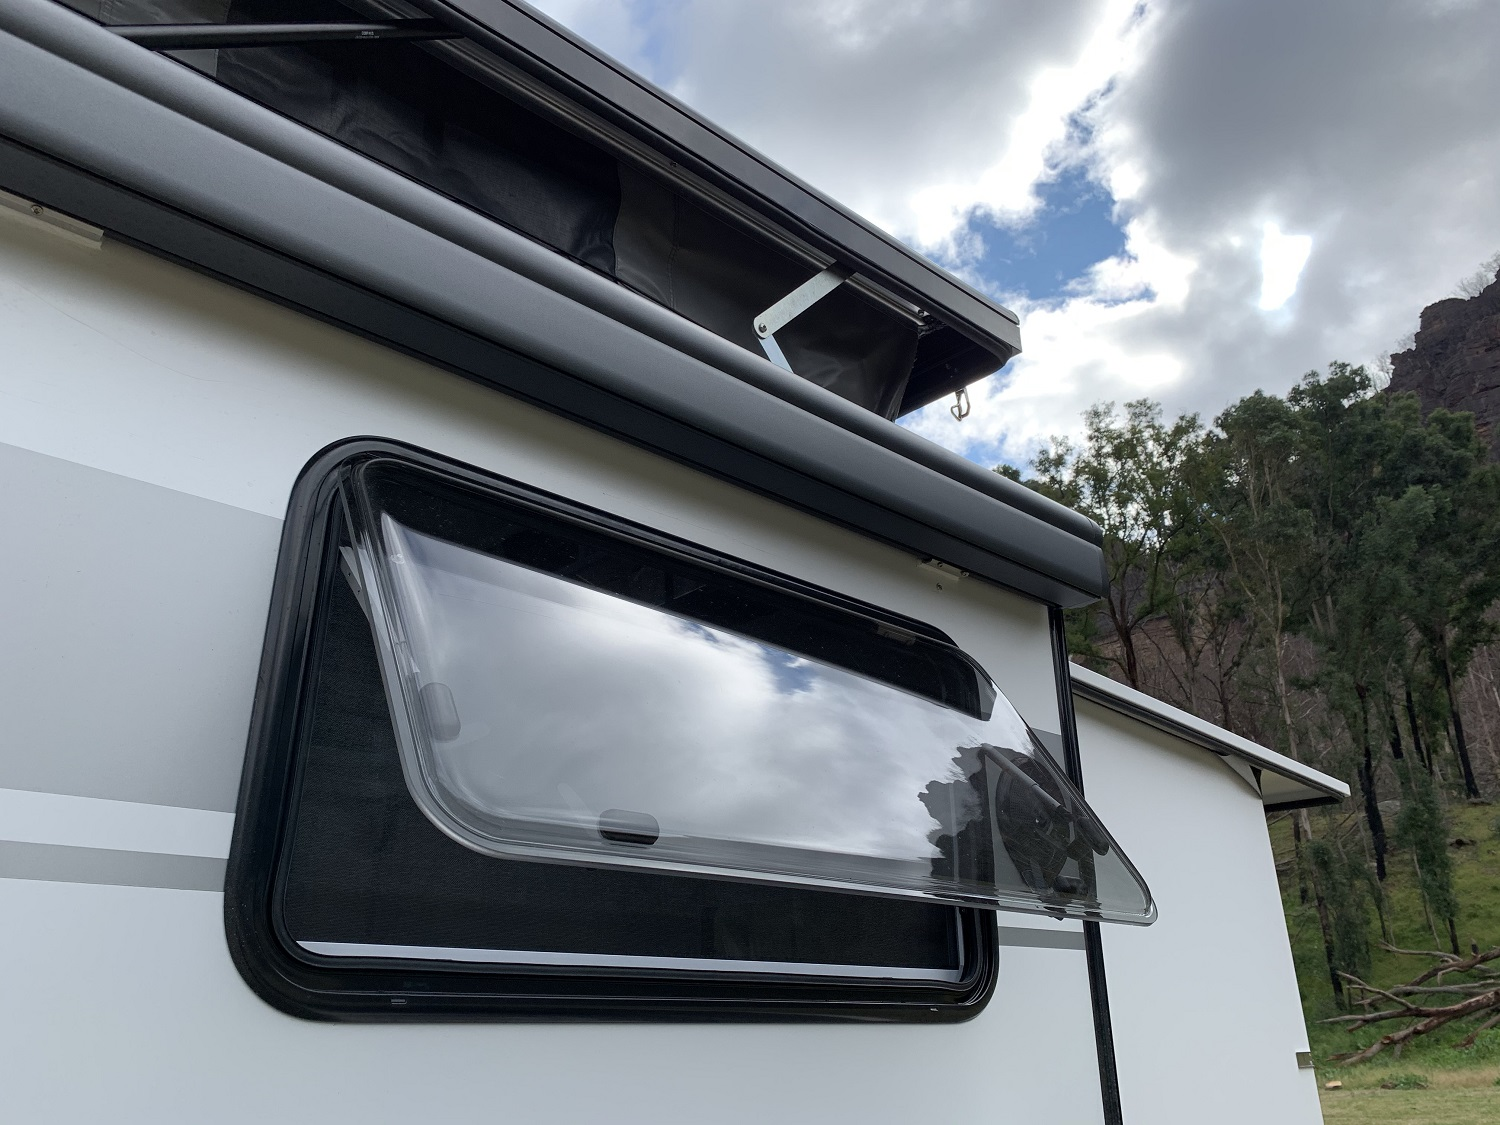 Take care cleaning caravan awnings, trims and seals